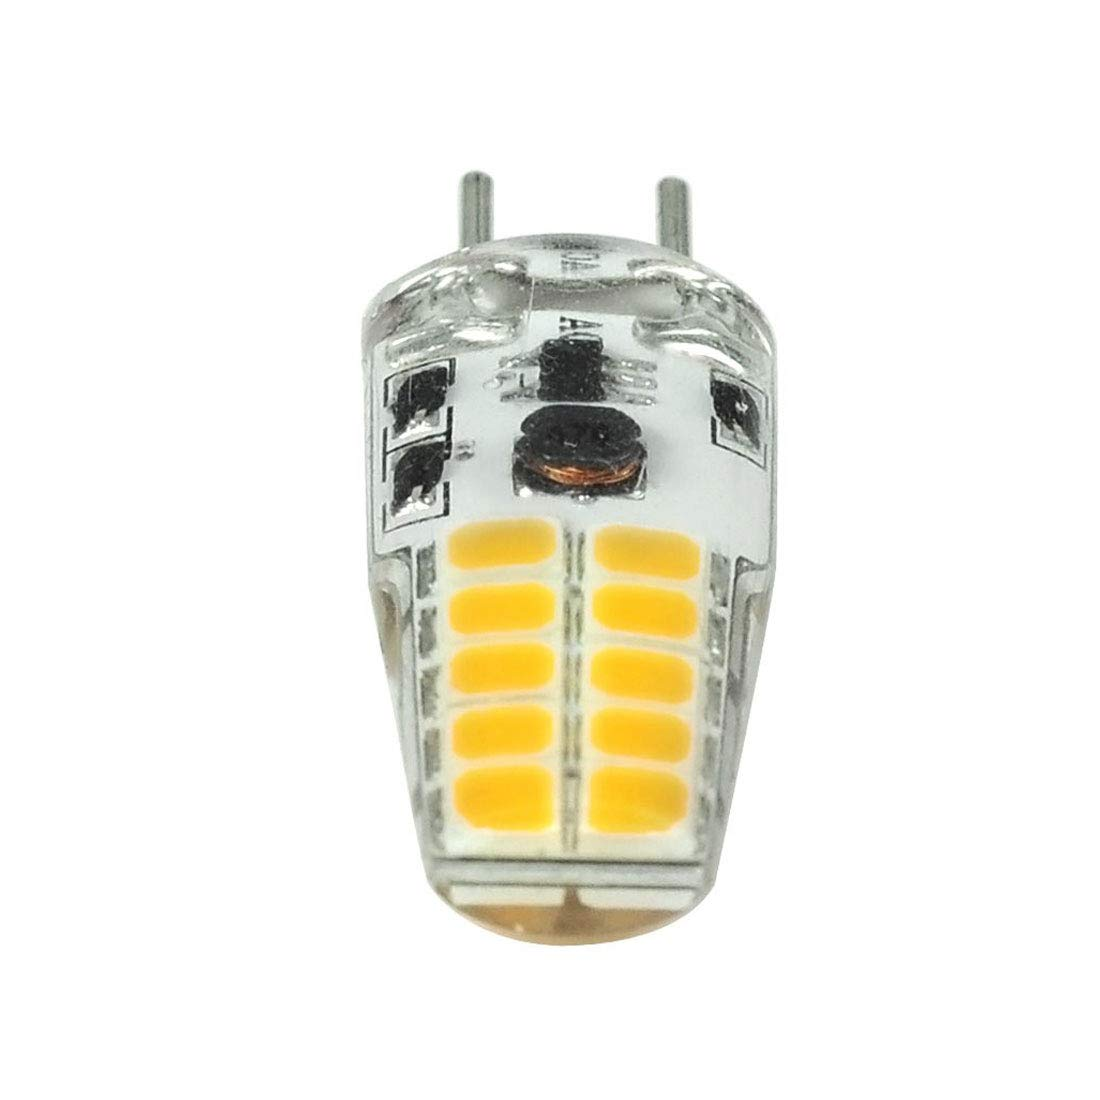 MENGS 2 Pack Flicker-Free GY6.35 3W LED Light with Silicone Material Warm White 20X2835 SMD AC//DC 12V